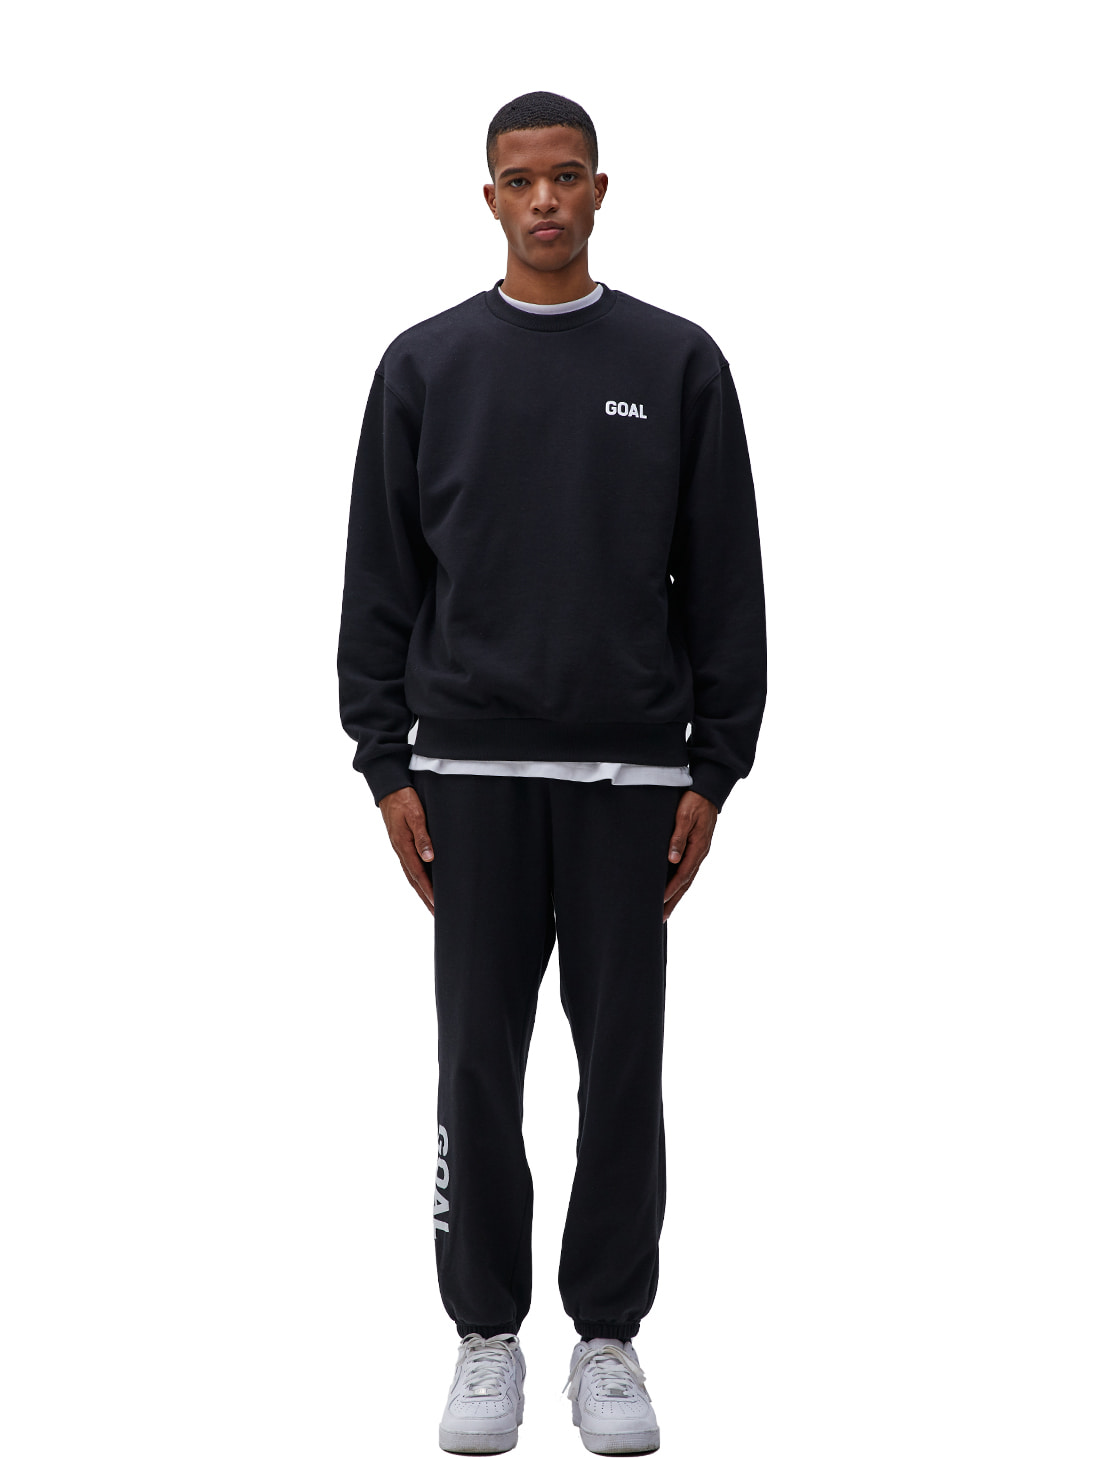 [10% OFF] FLOCKING SWEATSHIRT & PANTS SET - BLACK